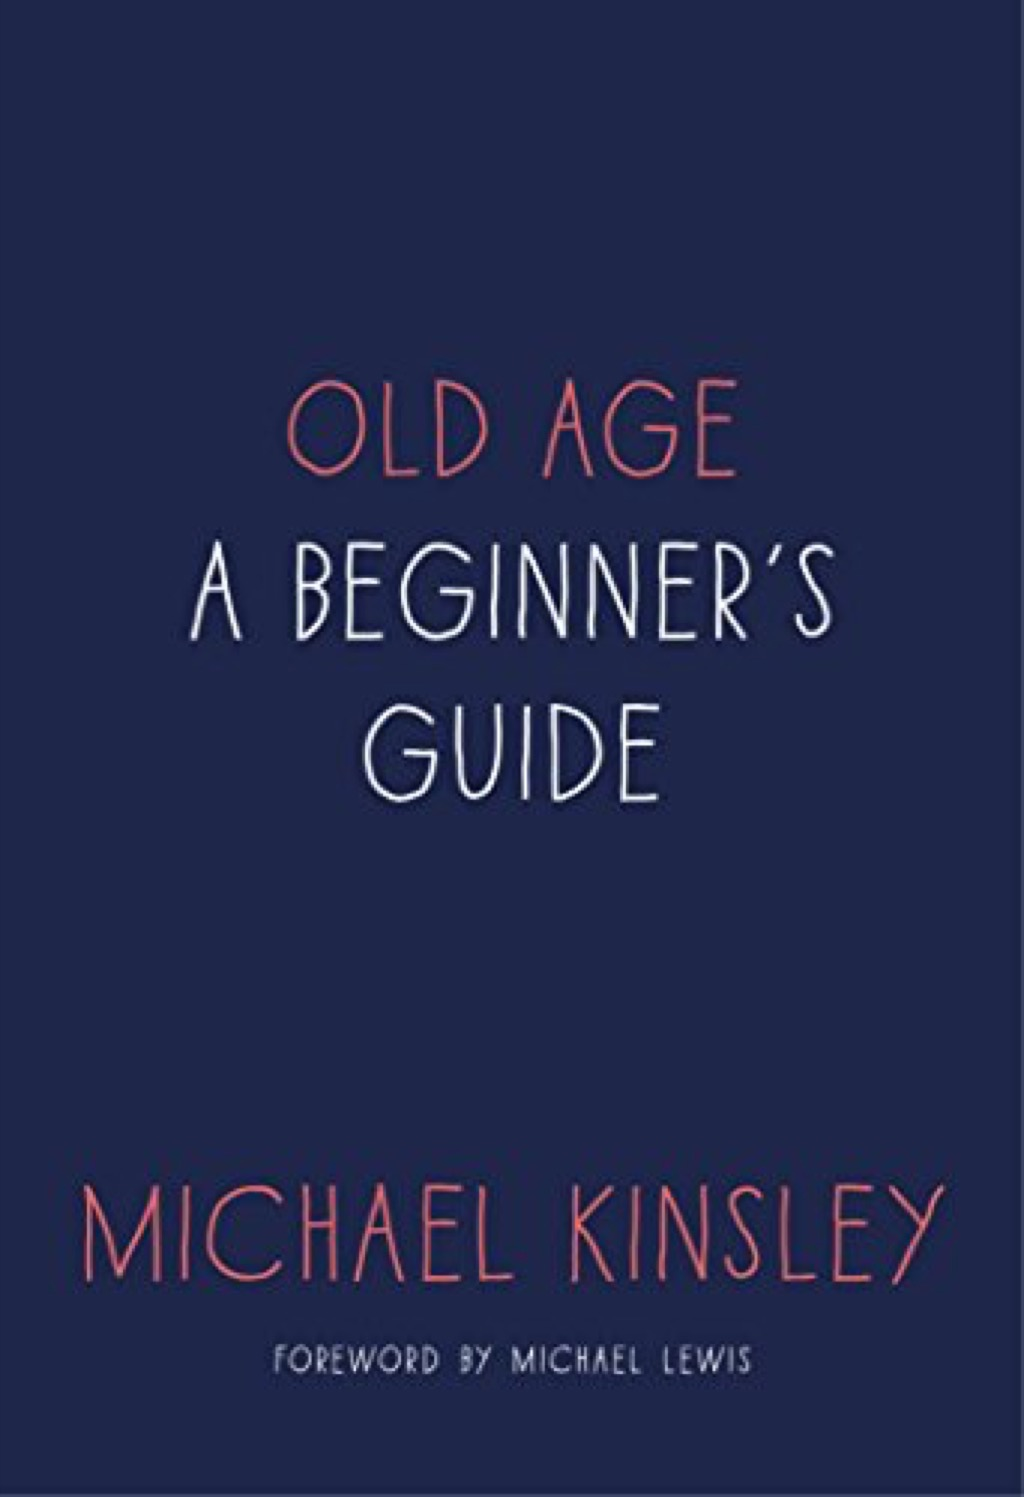 Old Age: A Beginner's Guide by Michael Kinsley